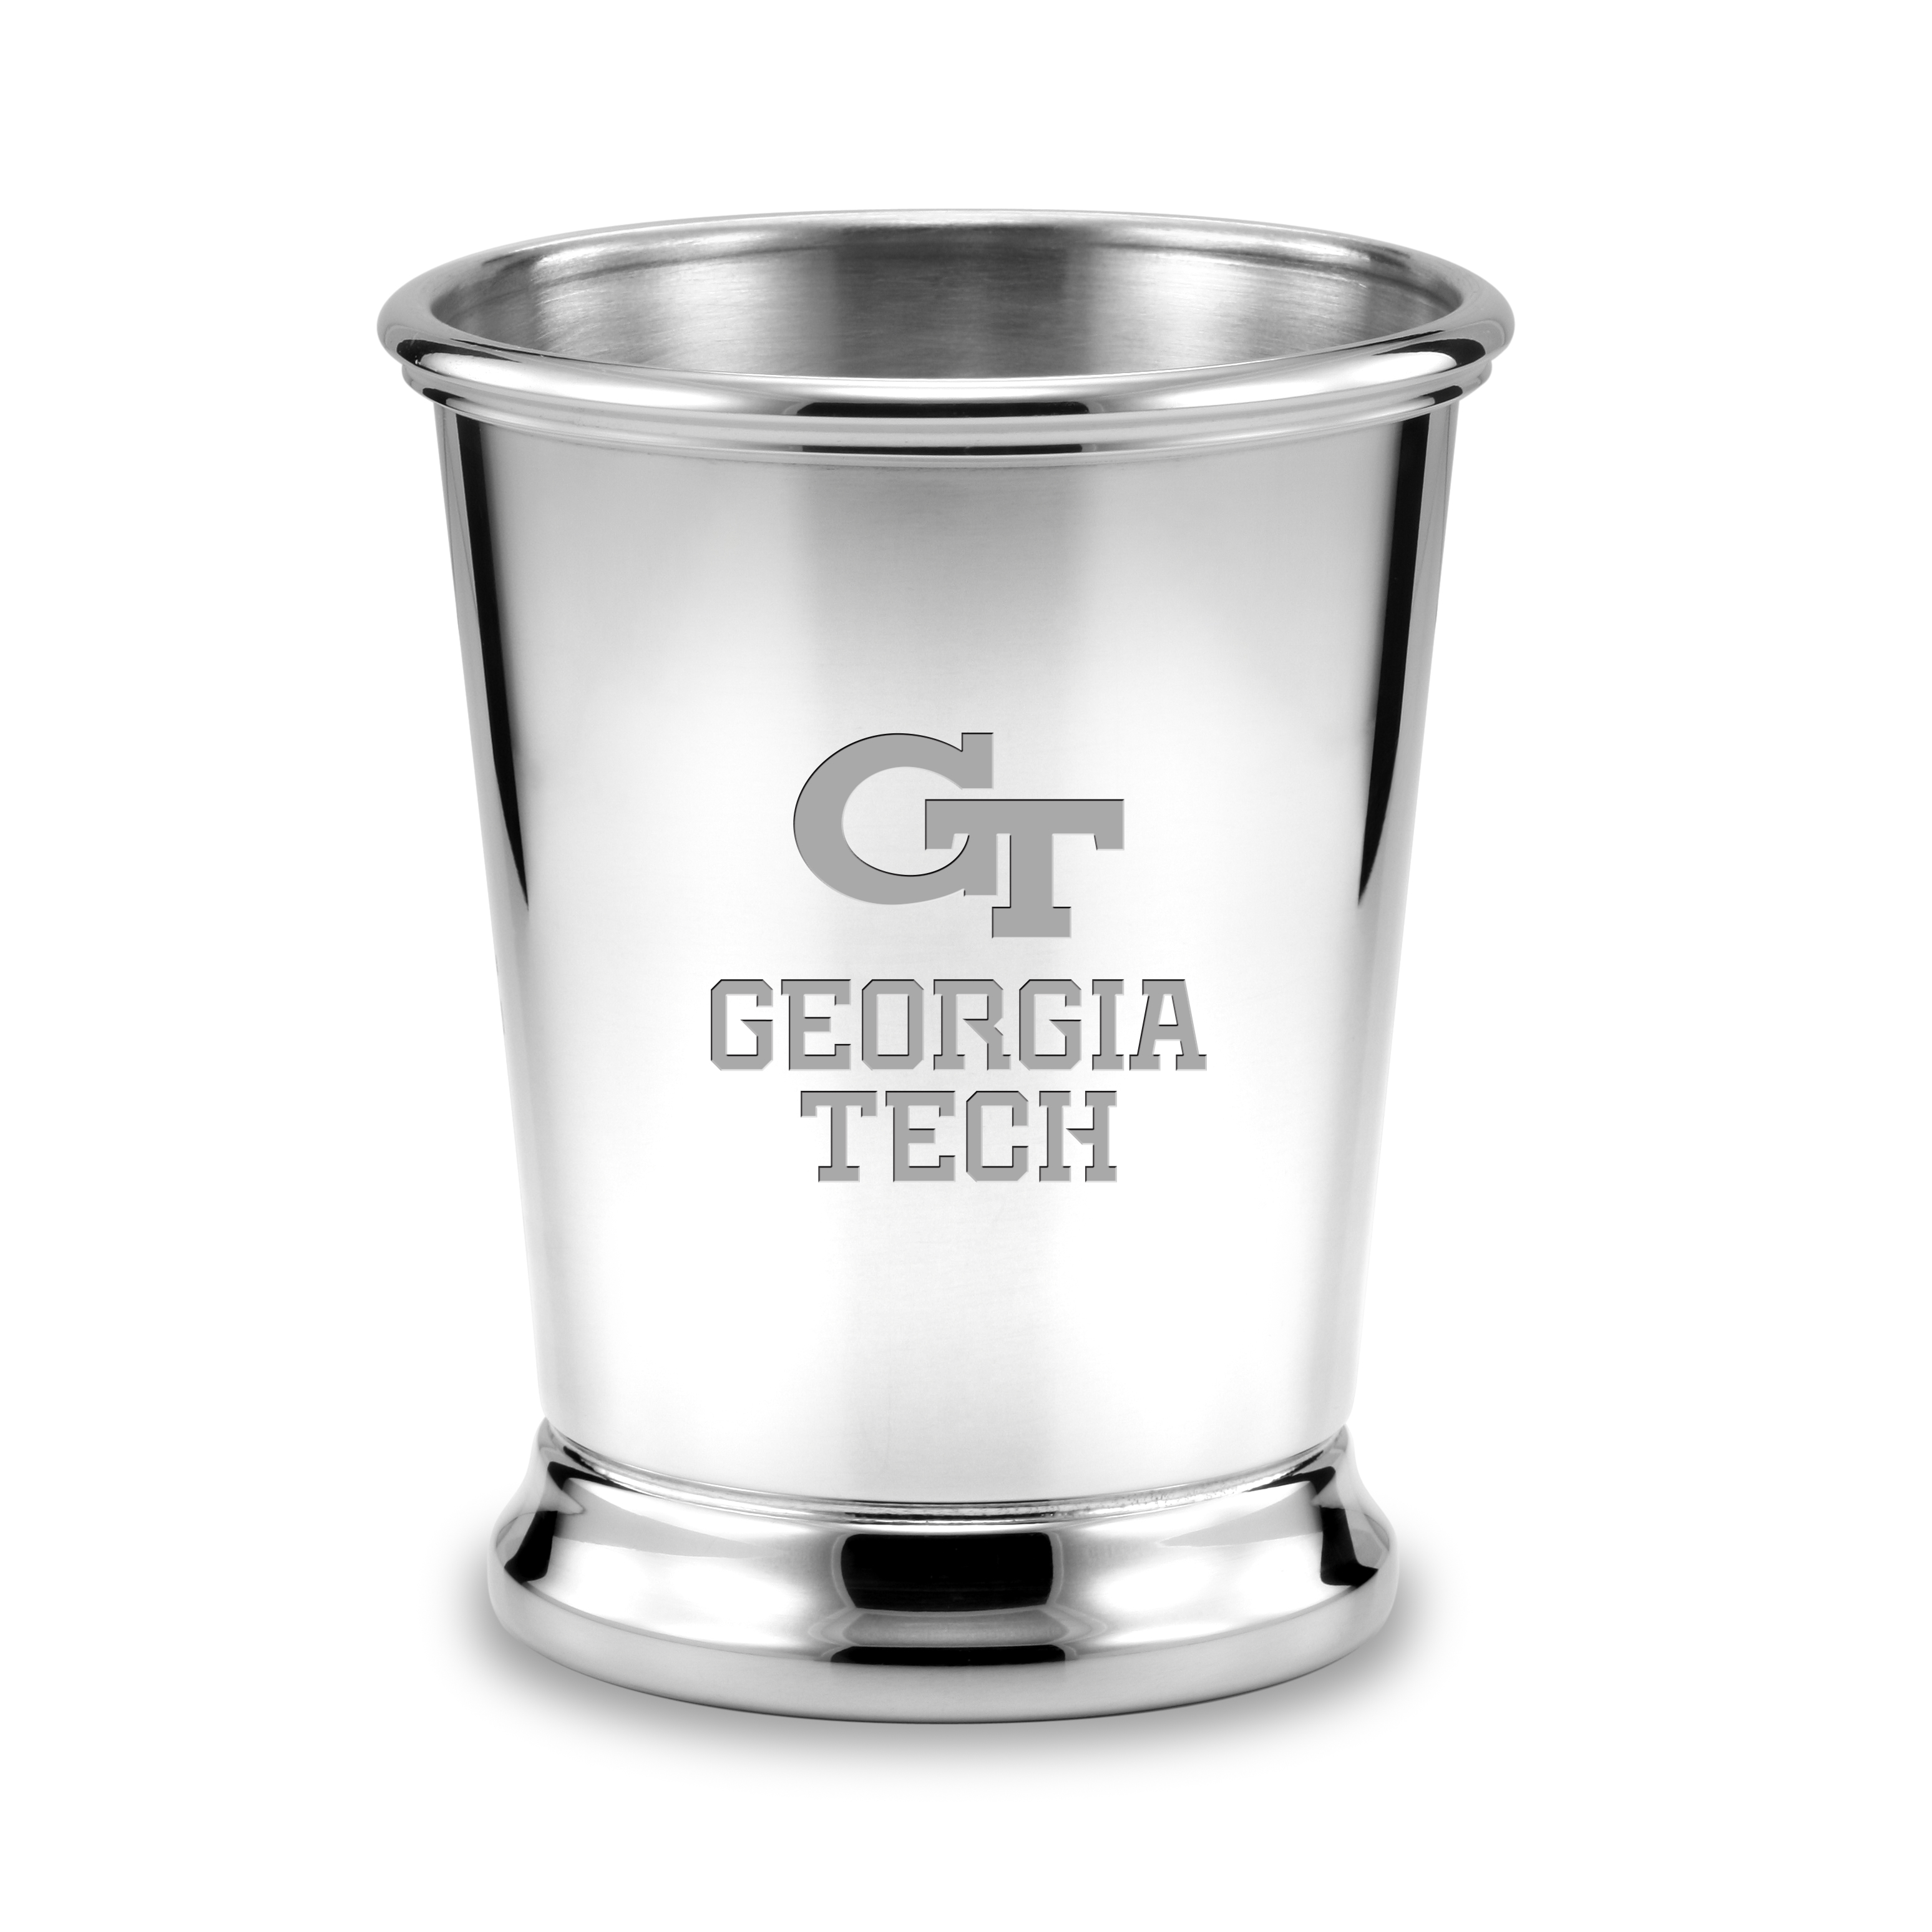 Georgia Tech Pewter Julep Cup